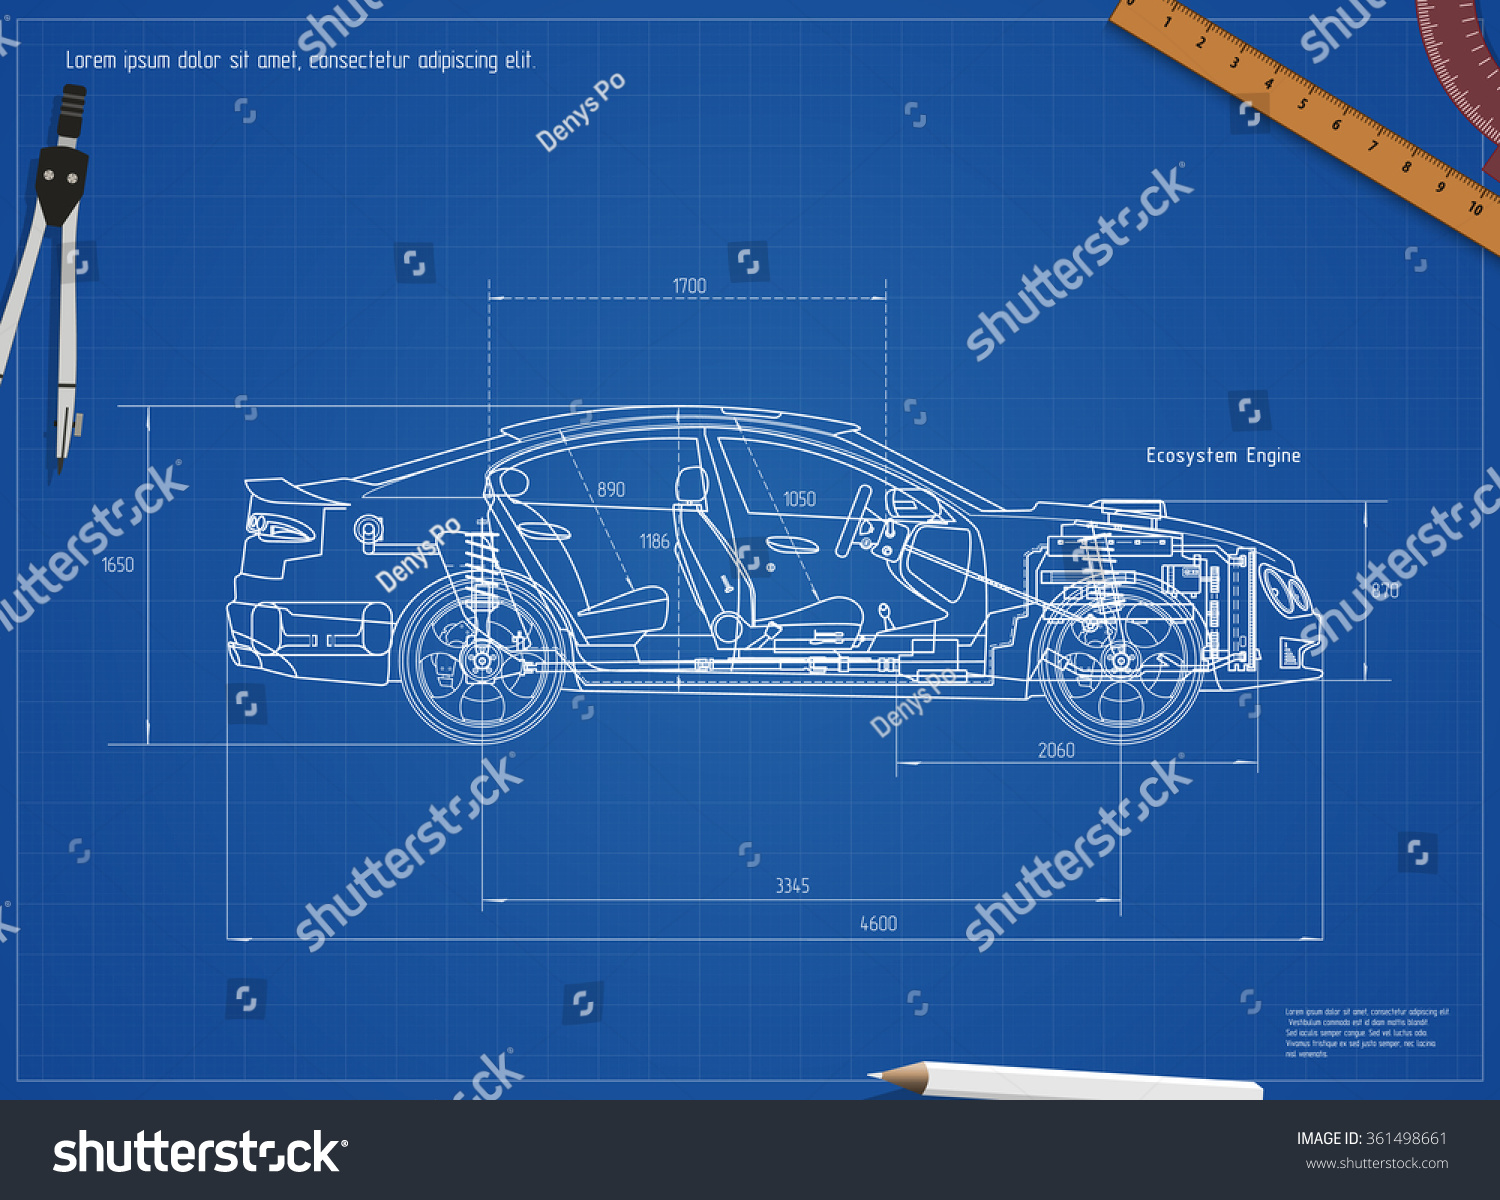 Detailed engineering blueprint car vector illustration stock vector detailed engineering blueprint of the car vector illustration malvernweather Choice Image